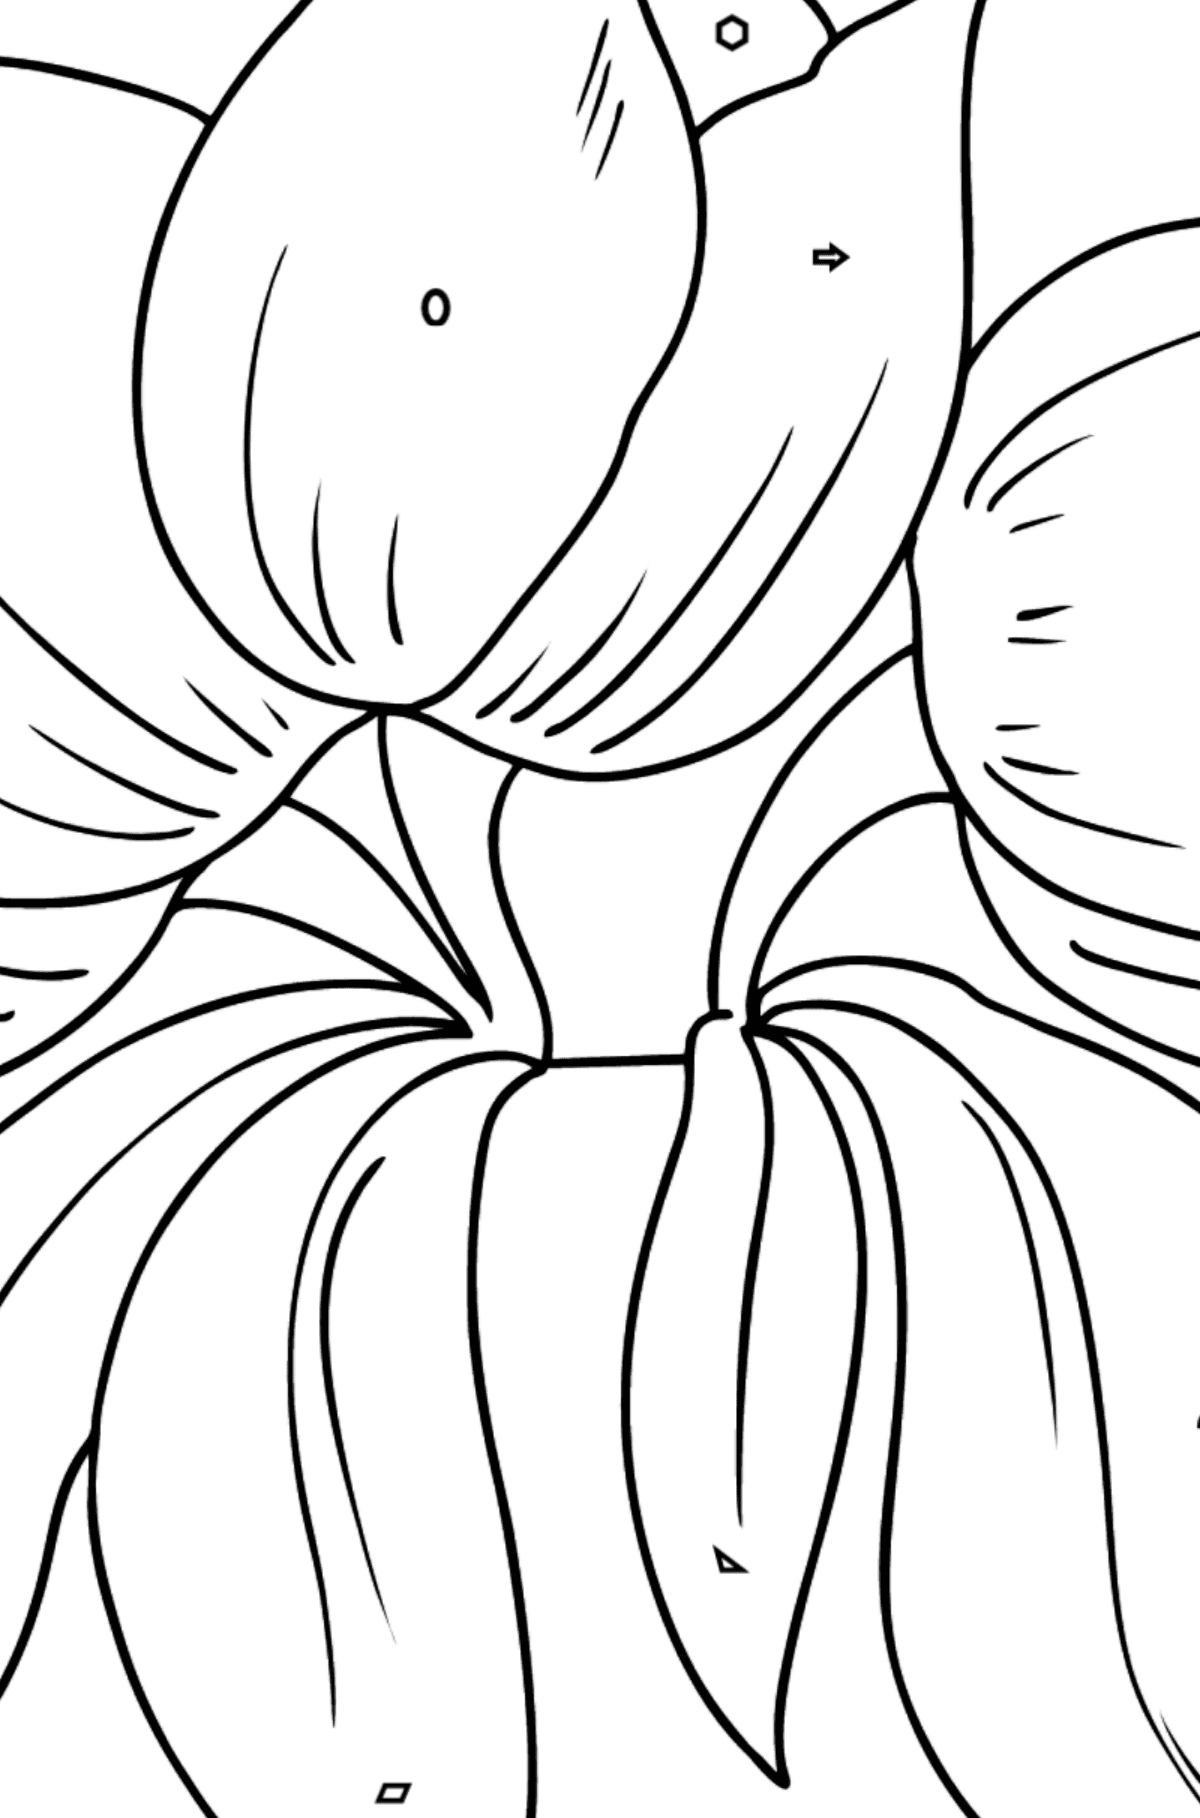 Flower Coloring Page - Tulips - Coloring by Geometric Shapes for Kids